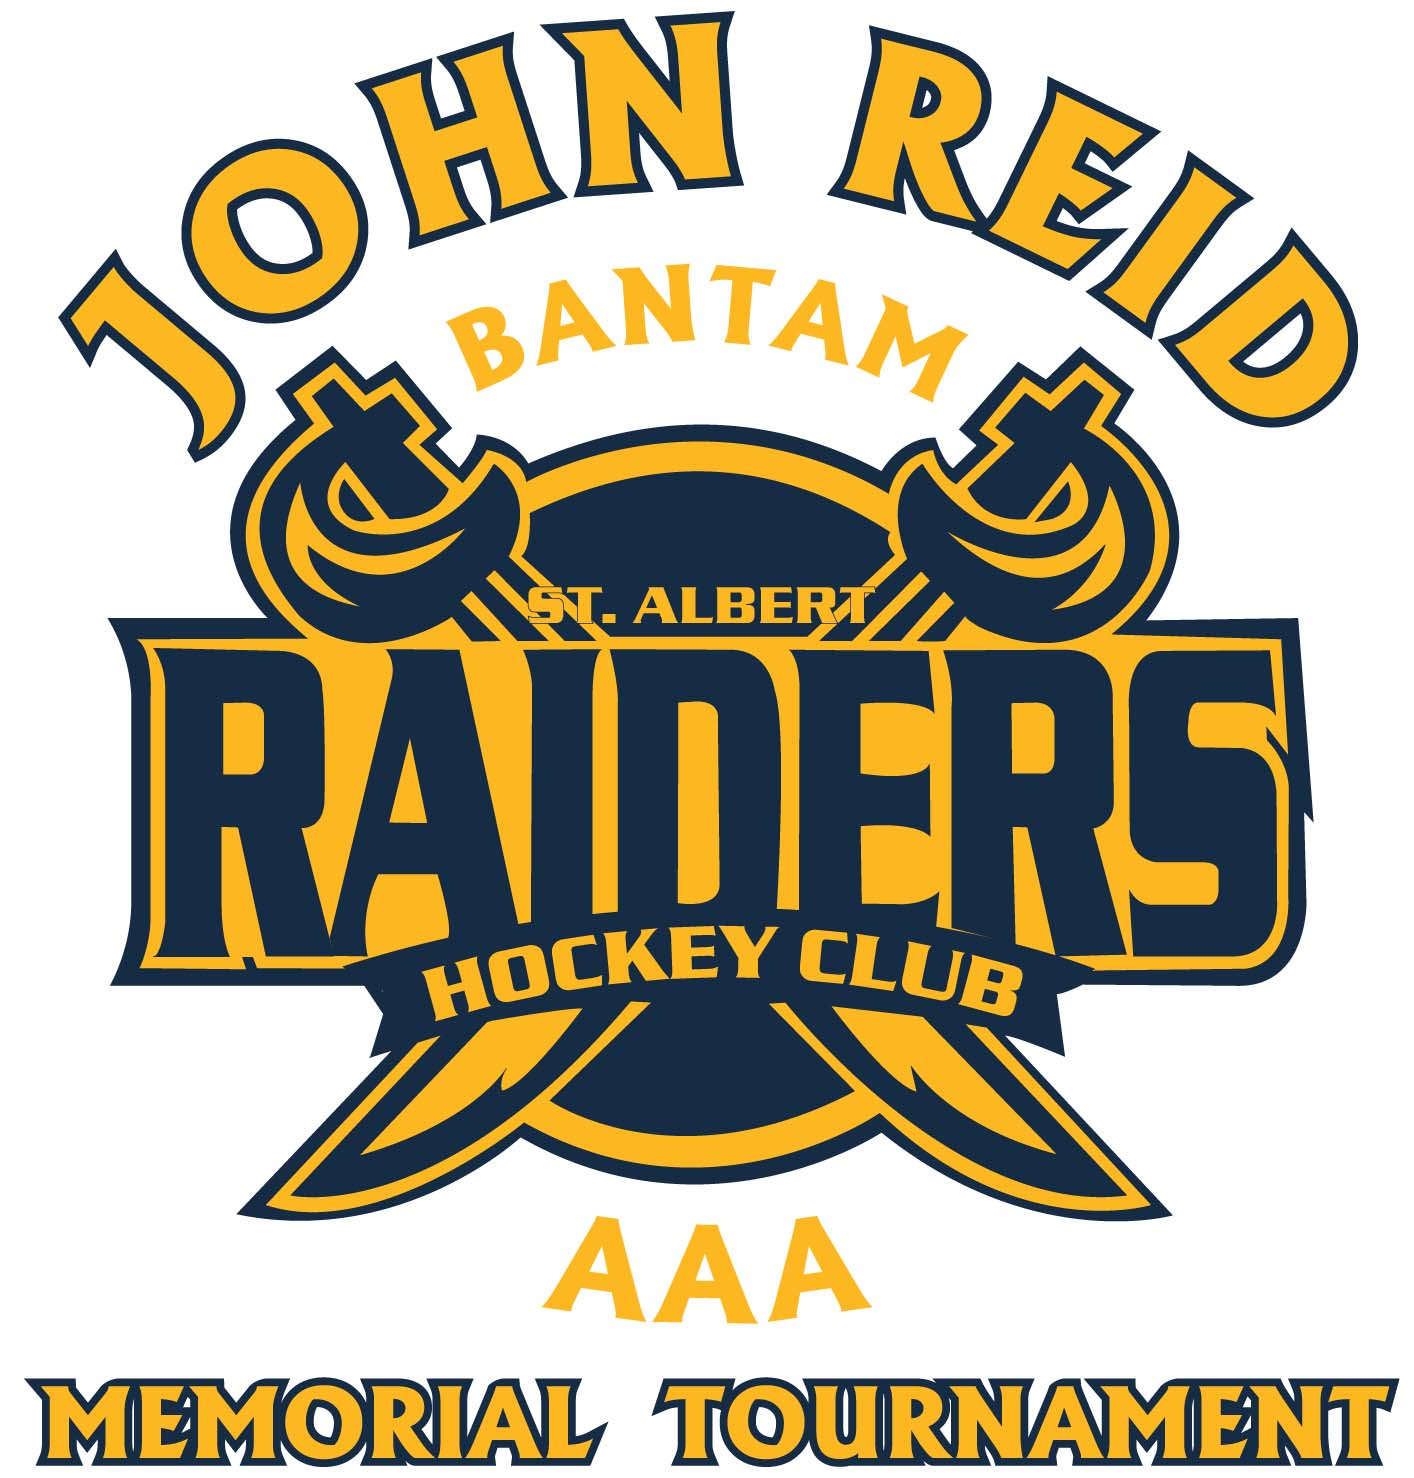 JohnReid logo.jpg